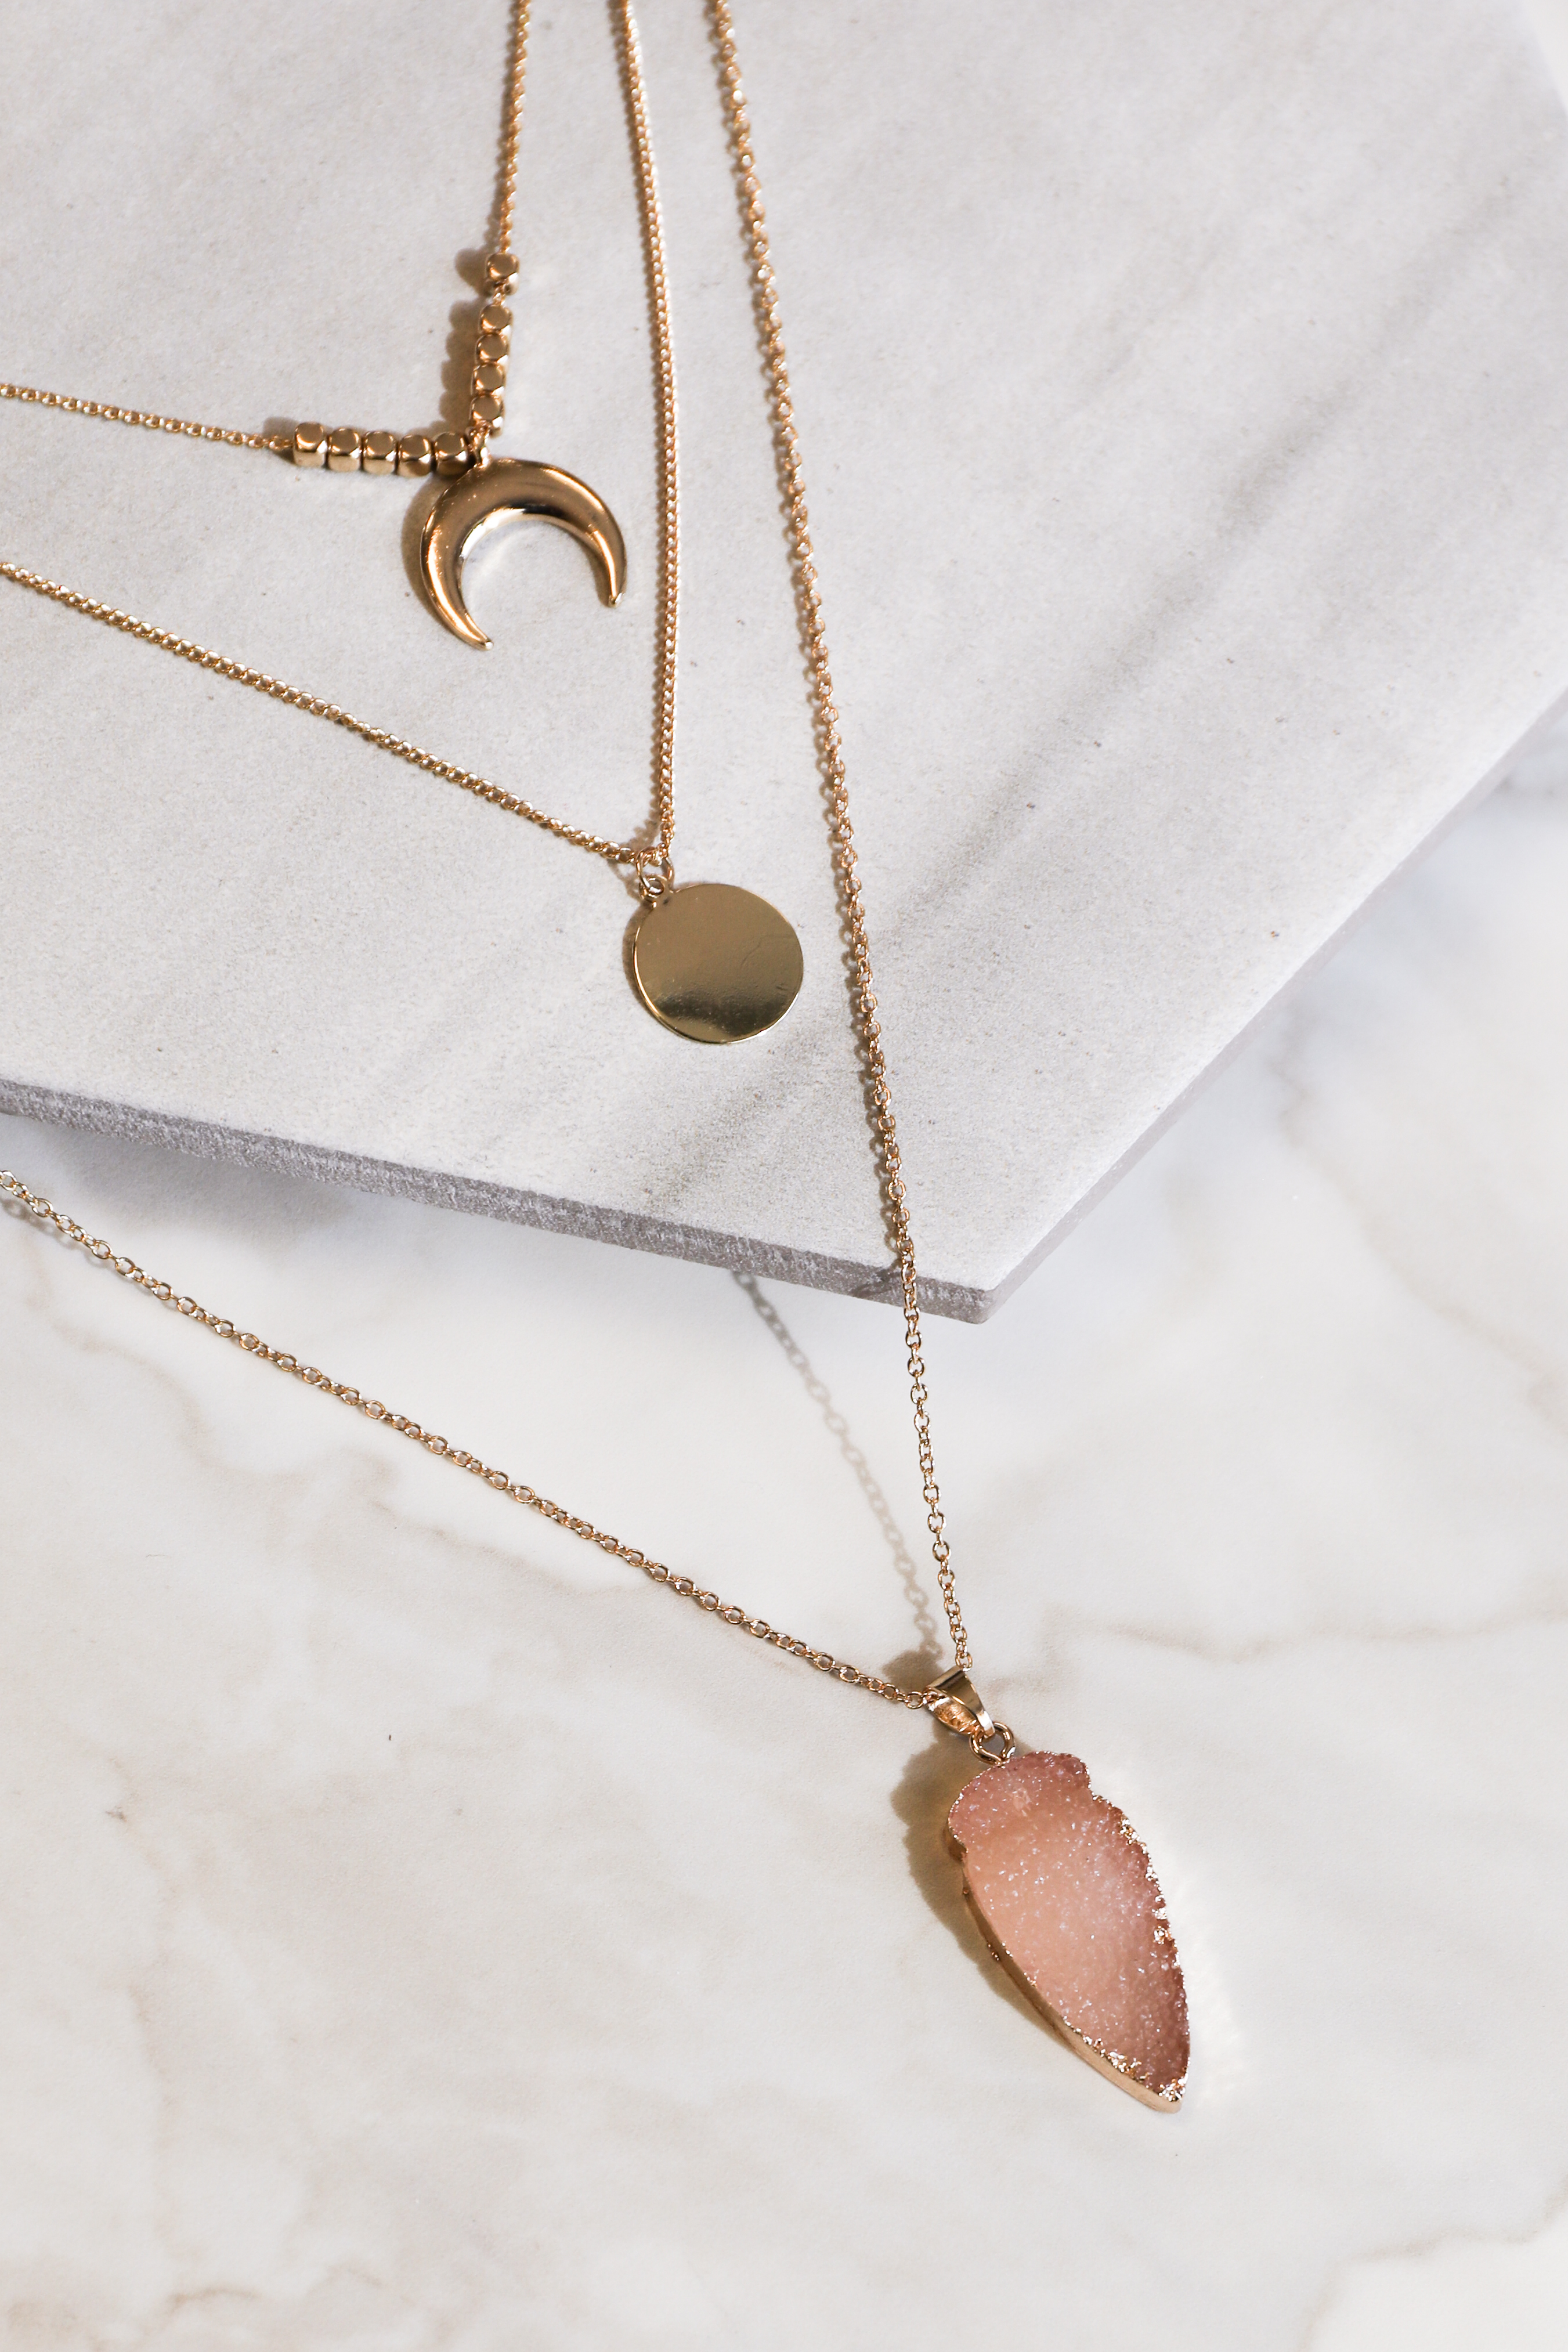 Gold Layered Necklace with Pale Pink Stone Pendant close up